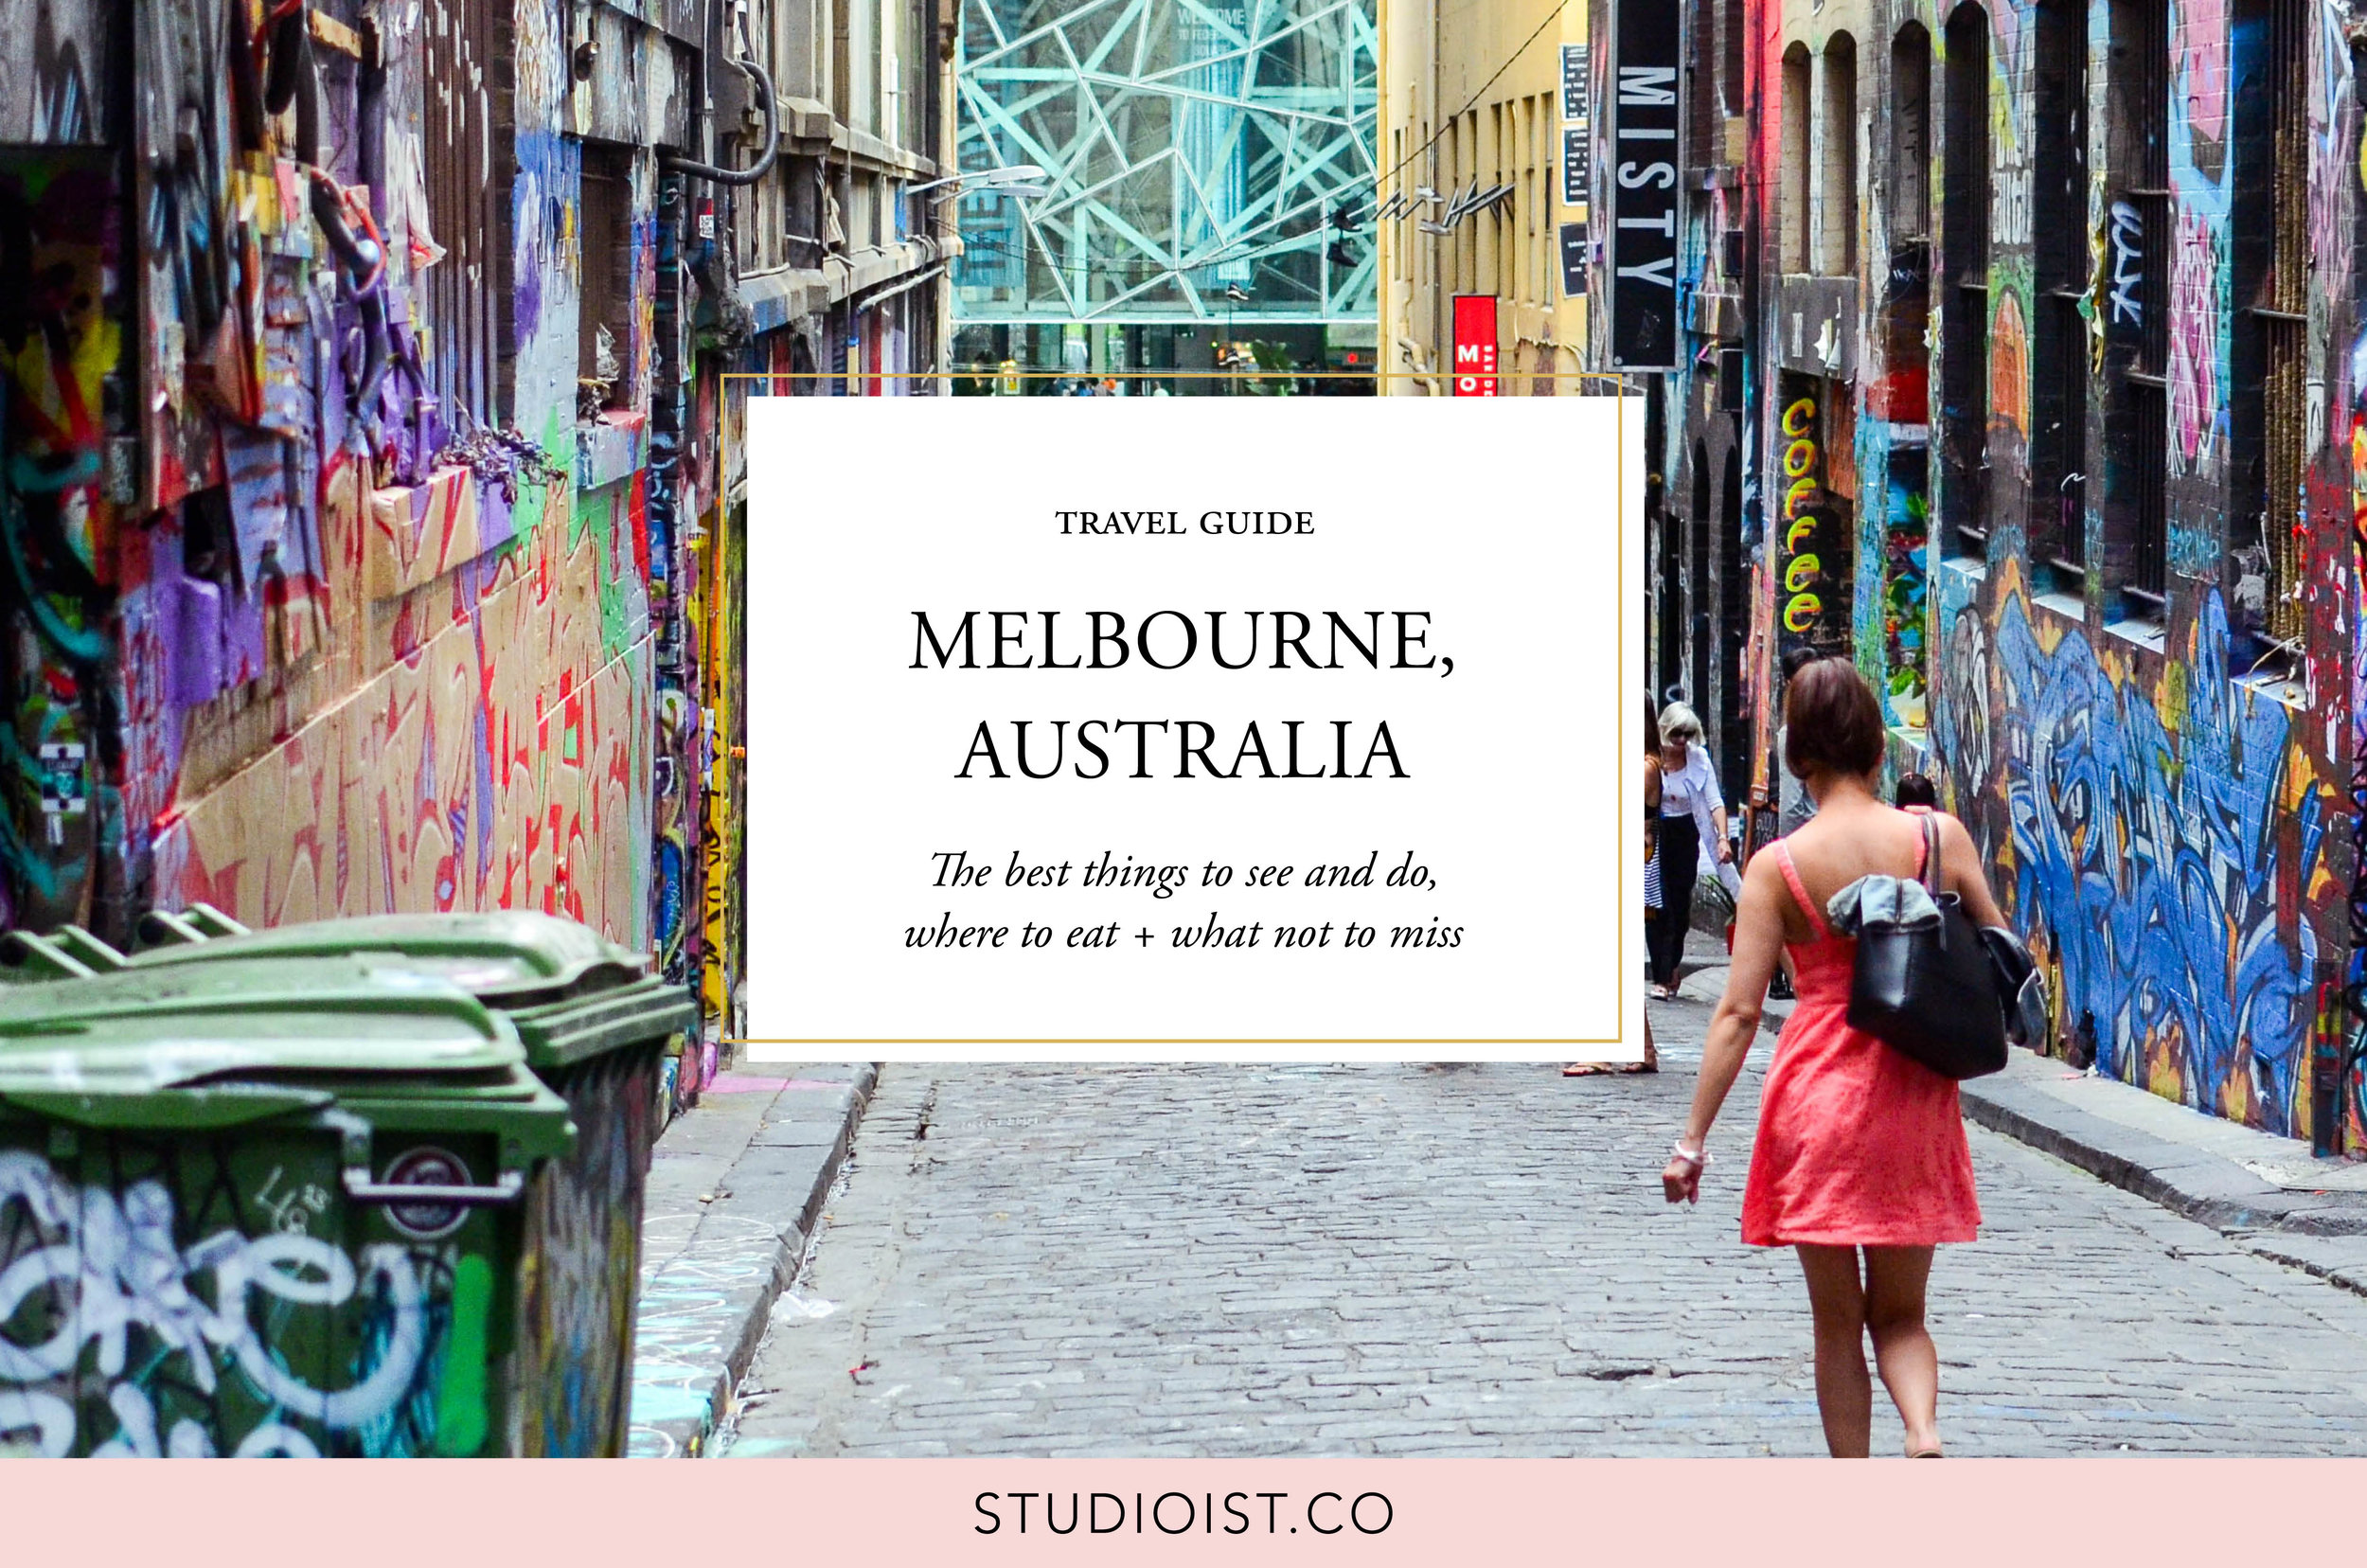 Studioist_Travel Cover_Melb travel guide-small.jpg